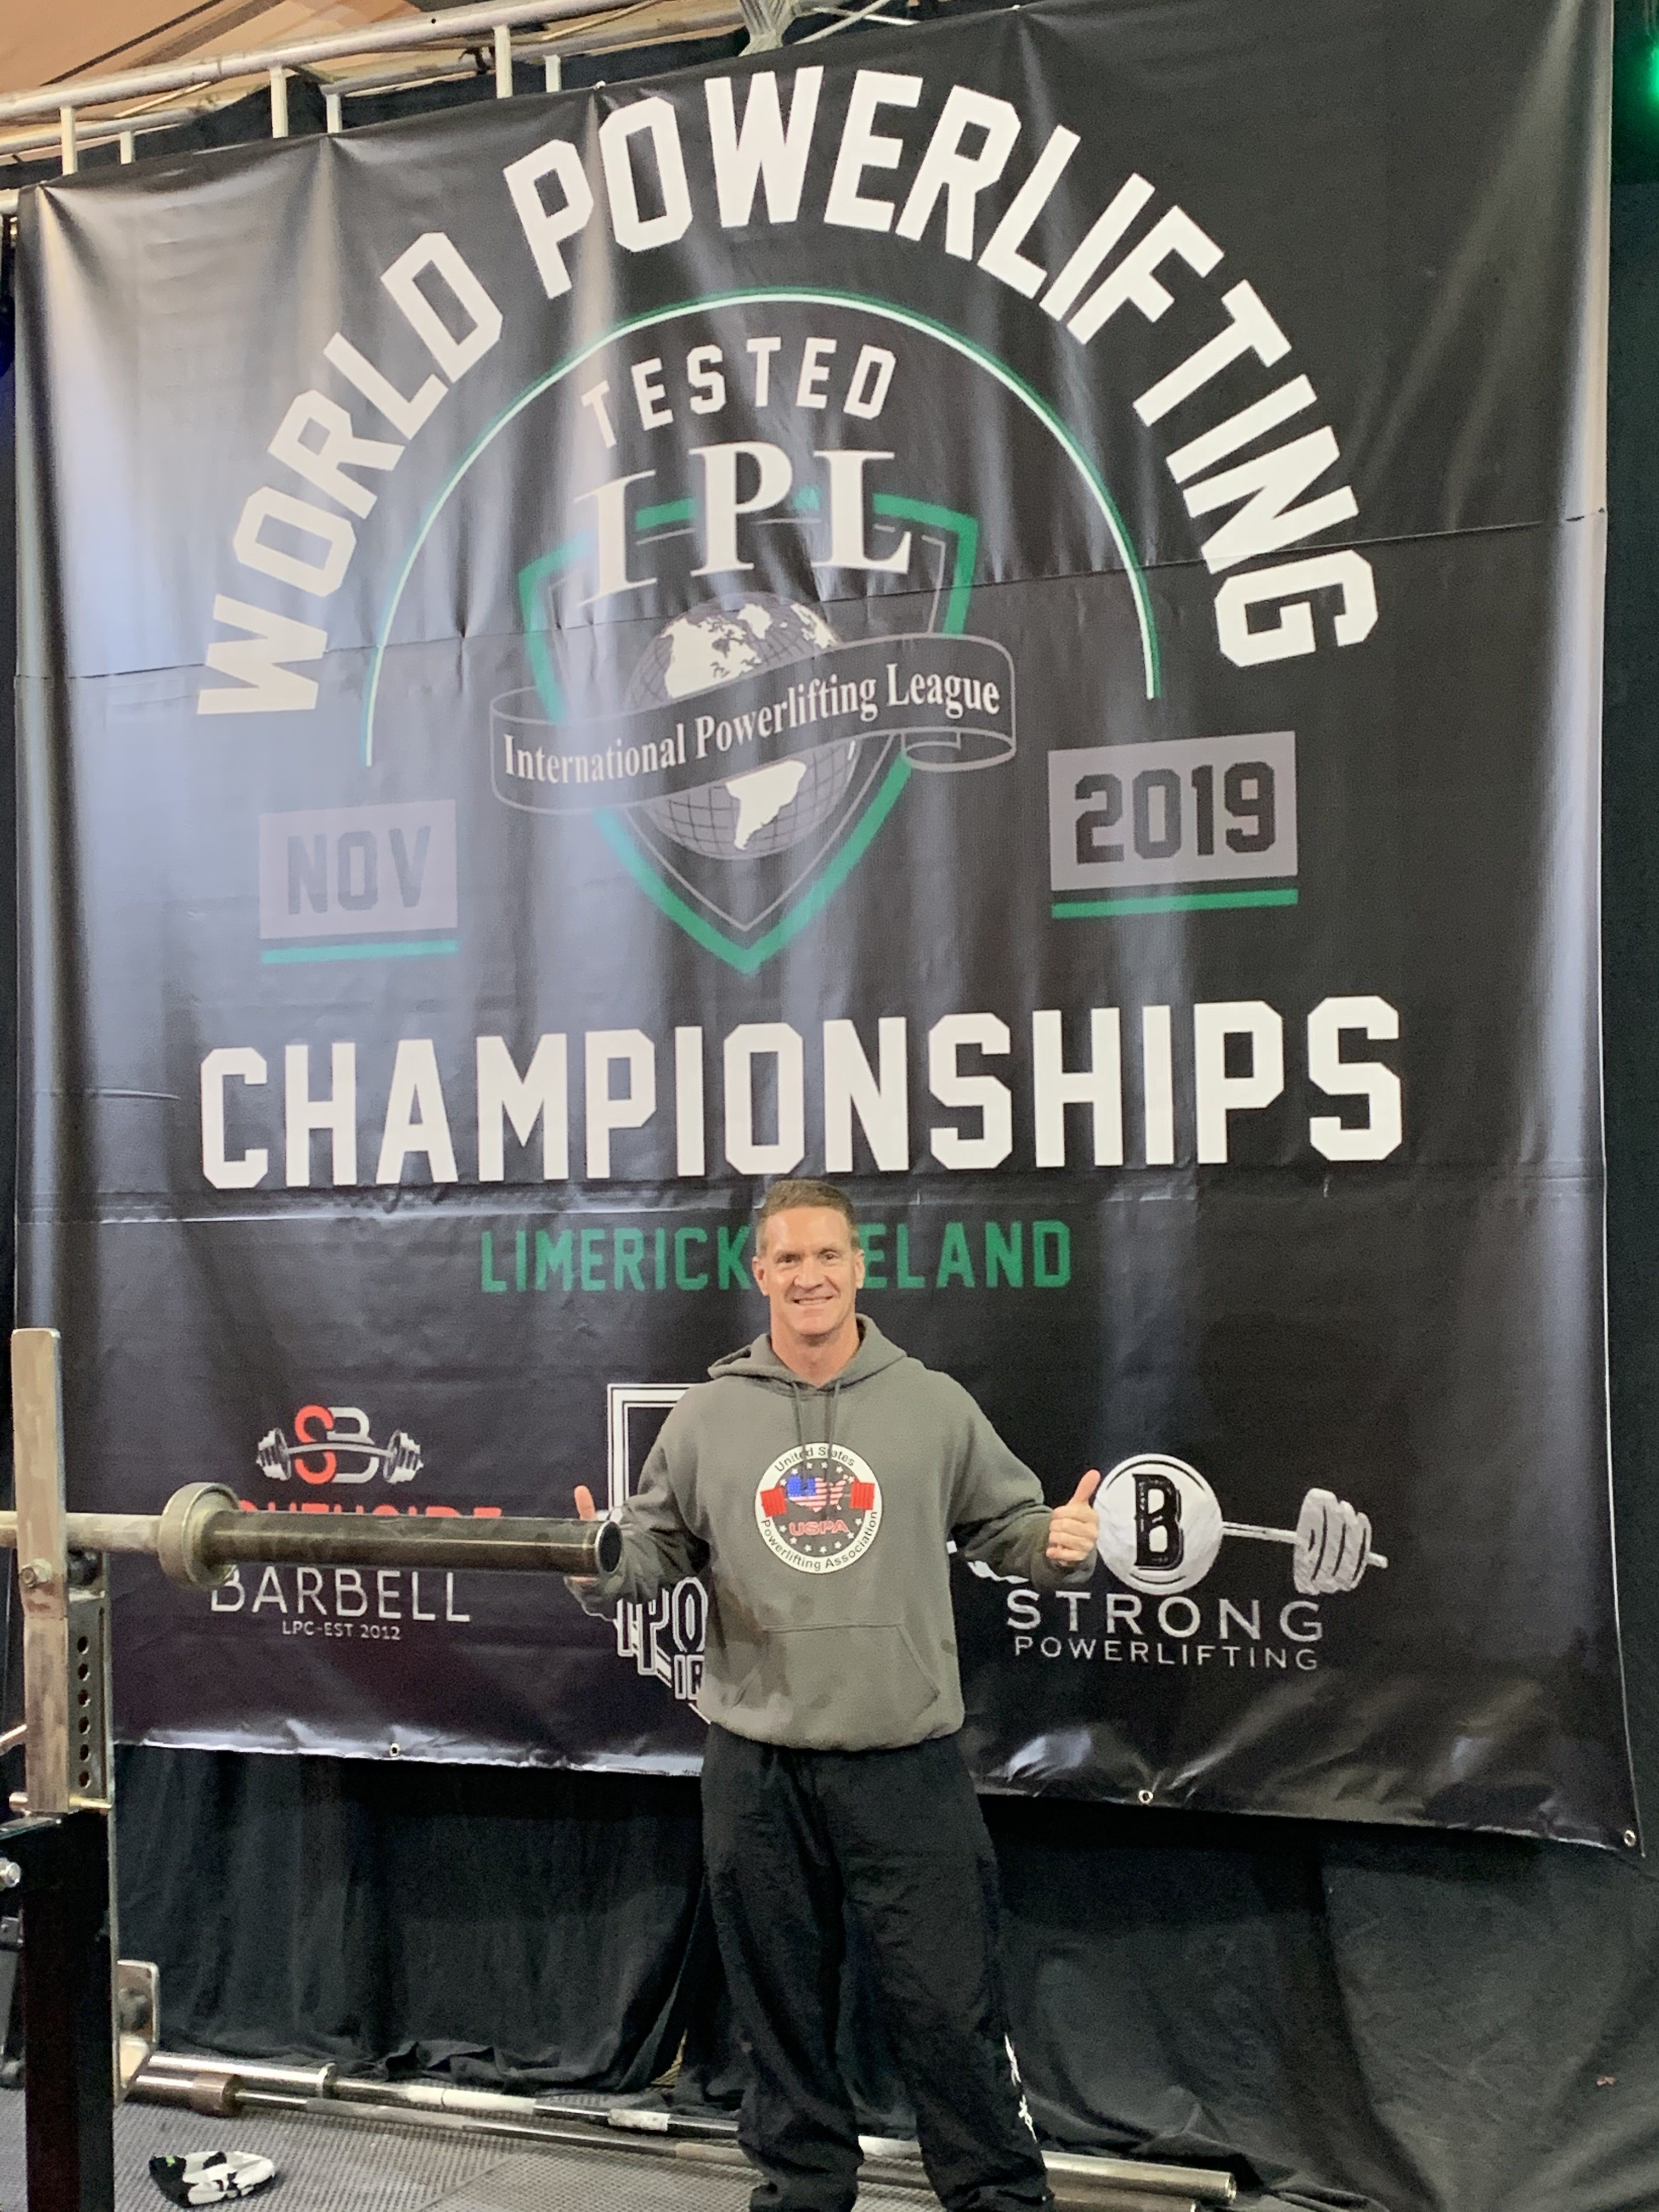 Dr. Matthew Chapman at the International Powerlifting League Drug Tested World Powerlifting Championships.